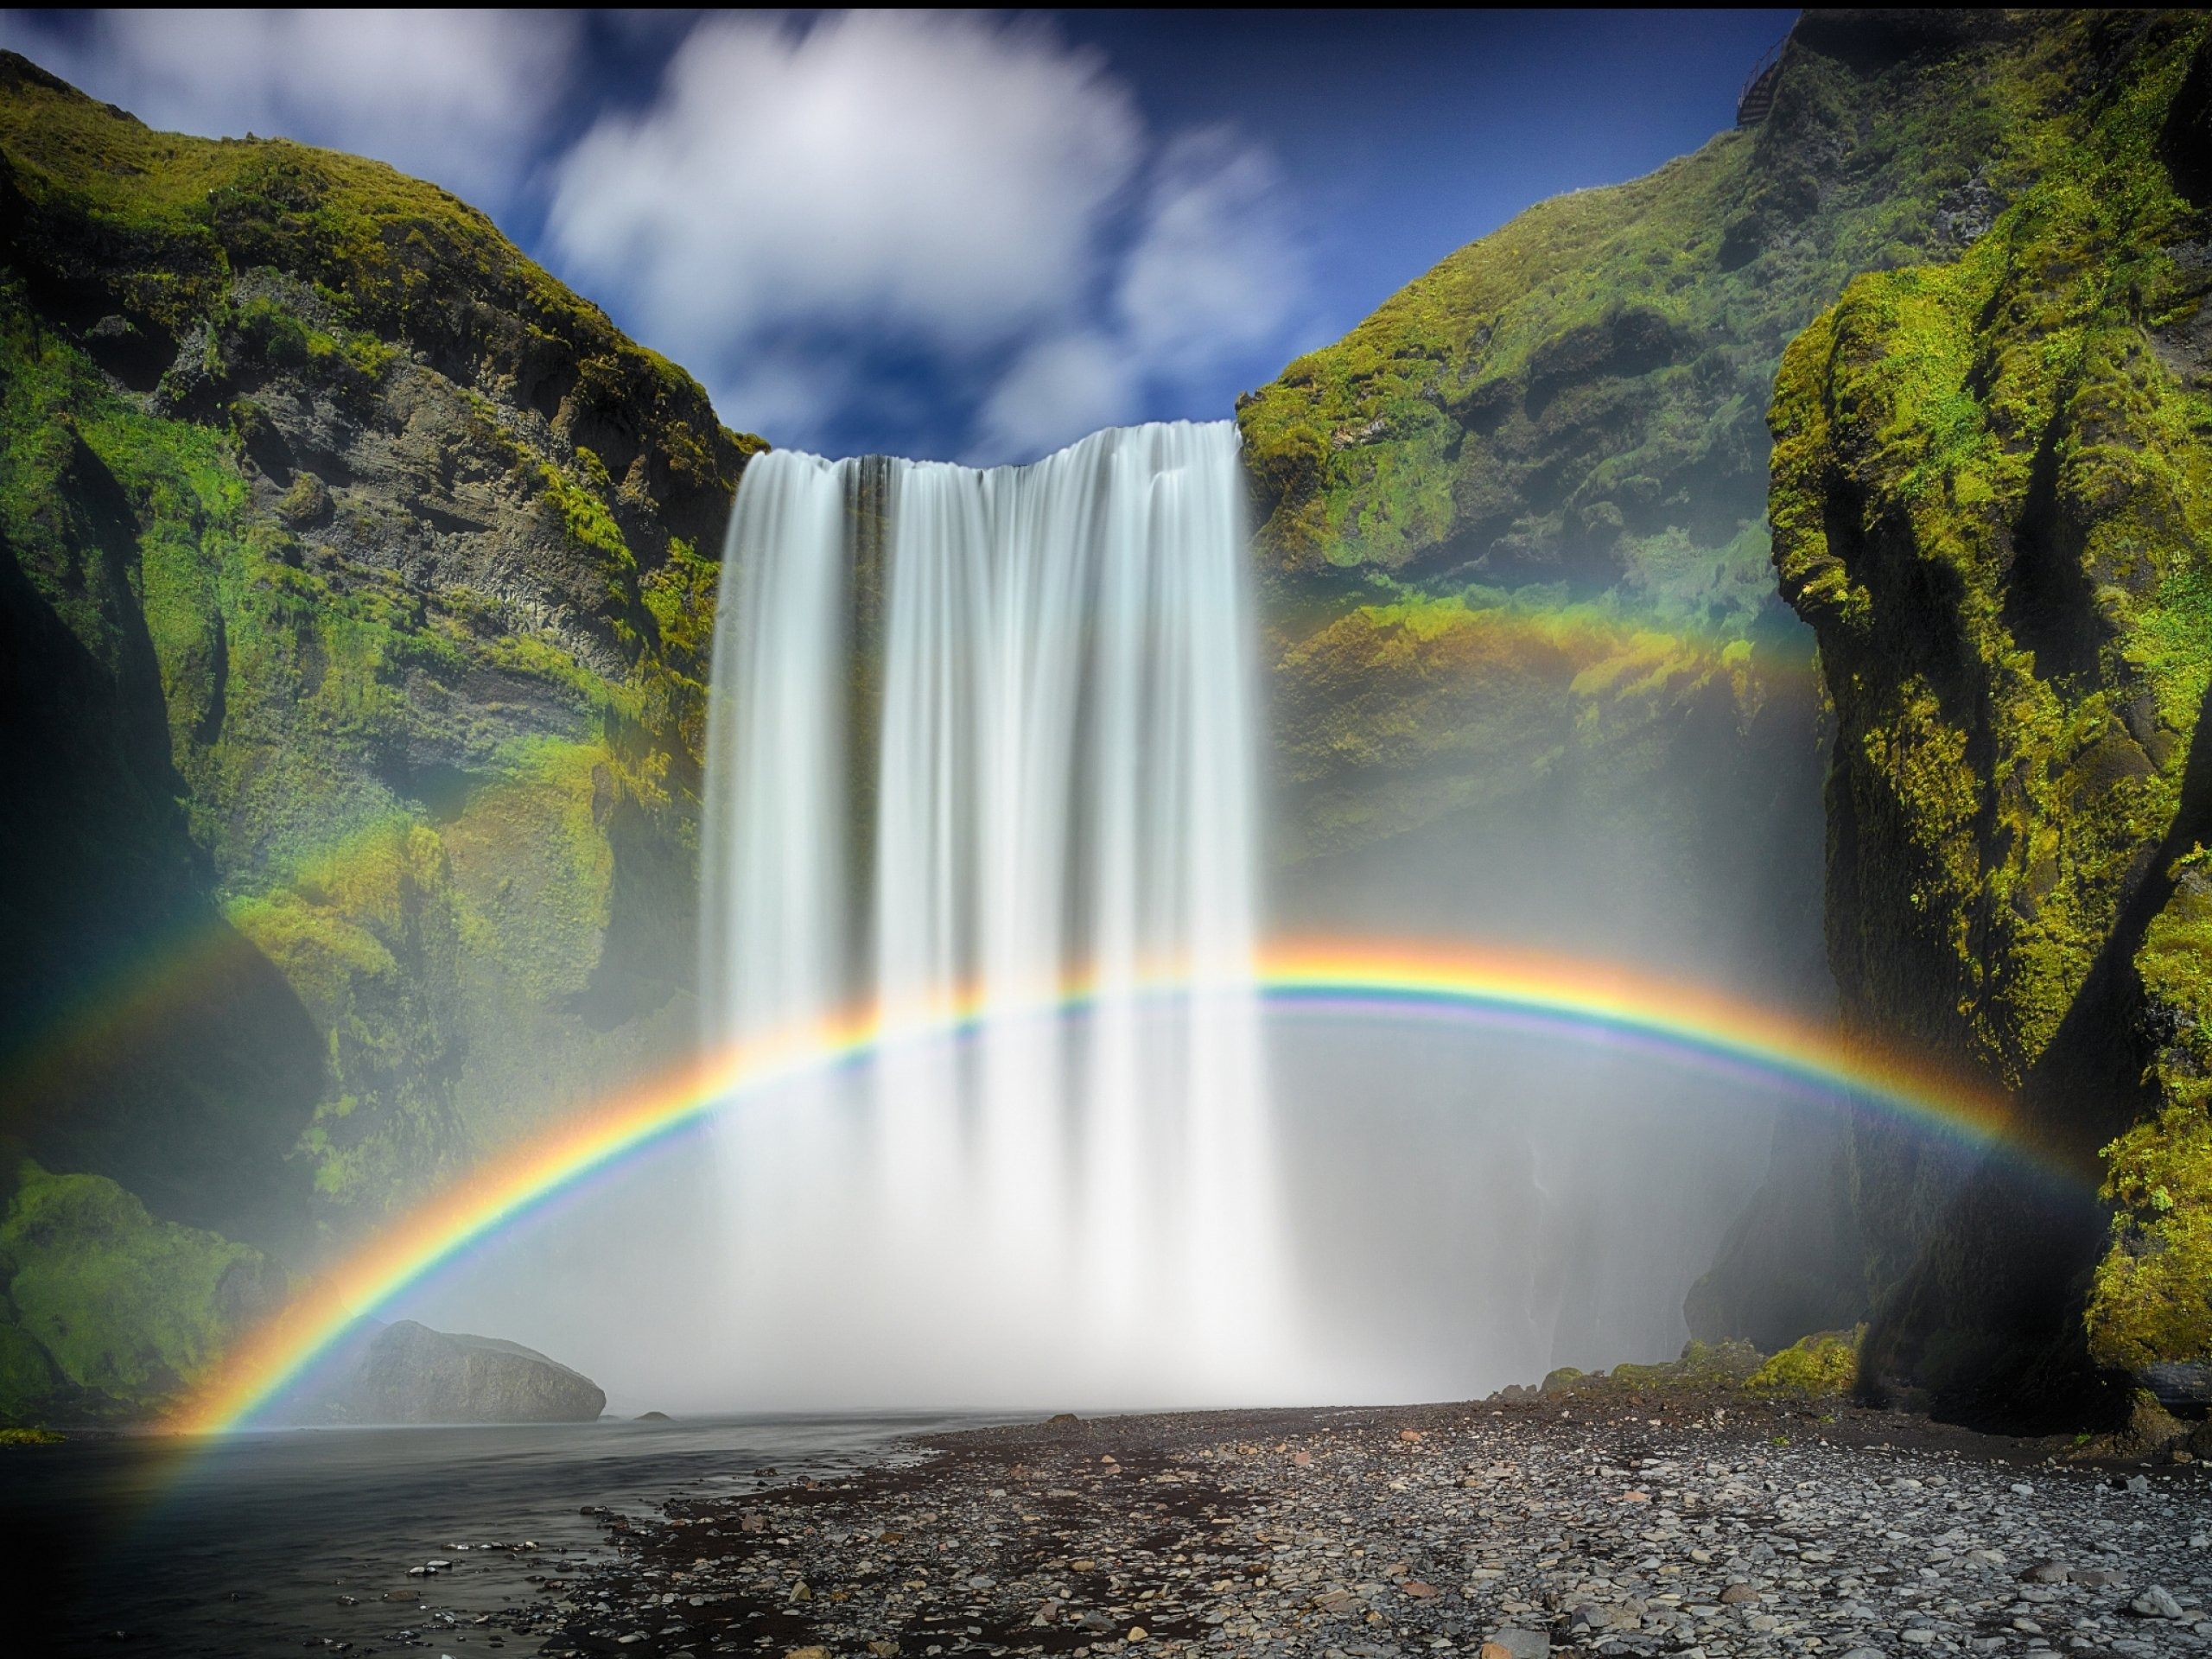 Desktop Wallpapers Waterfalls with Rainbow - WallpaperSafari